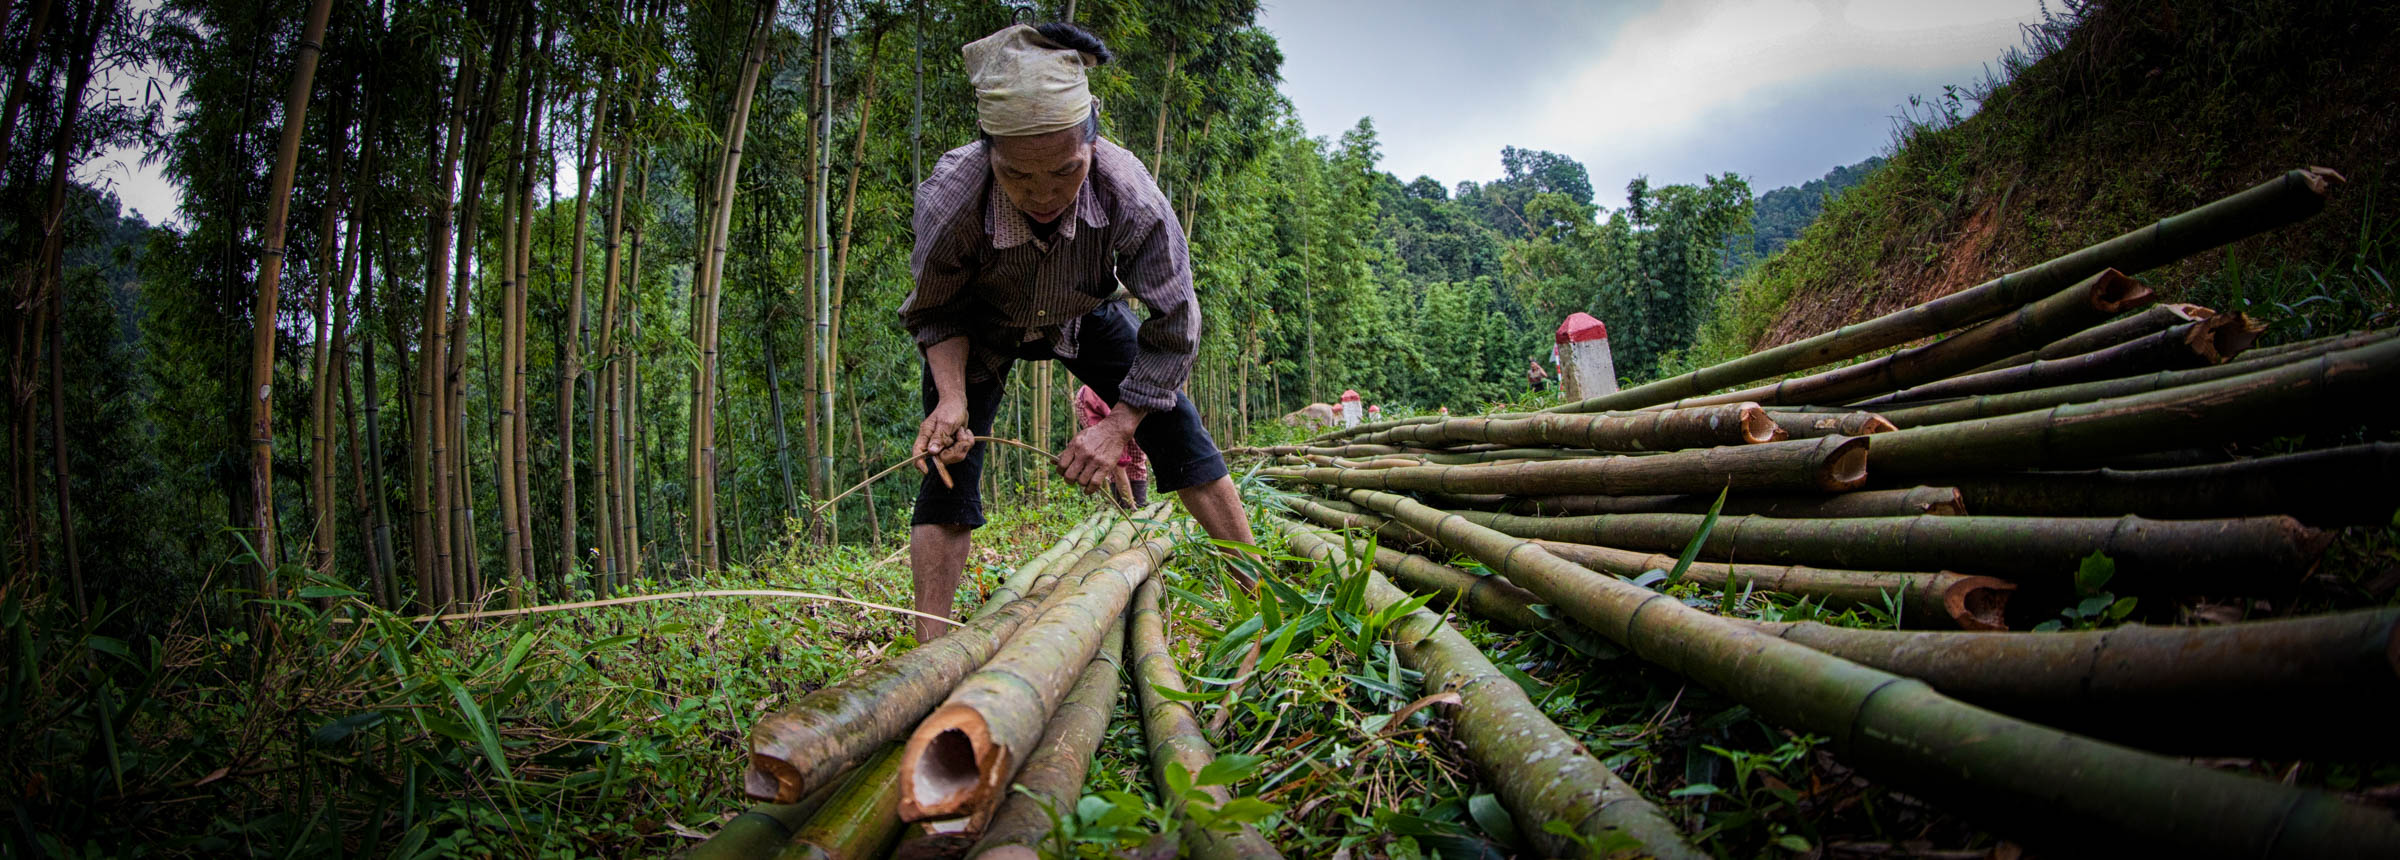 Woman gathering bamboo in forest